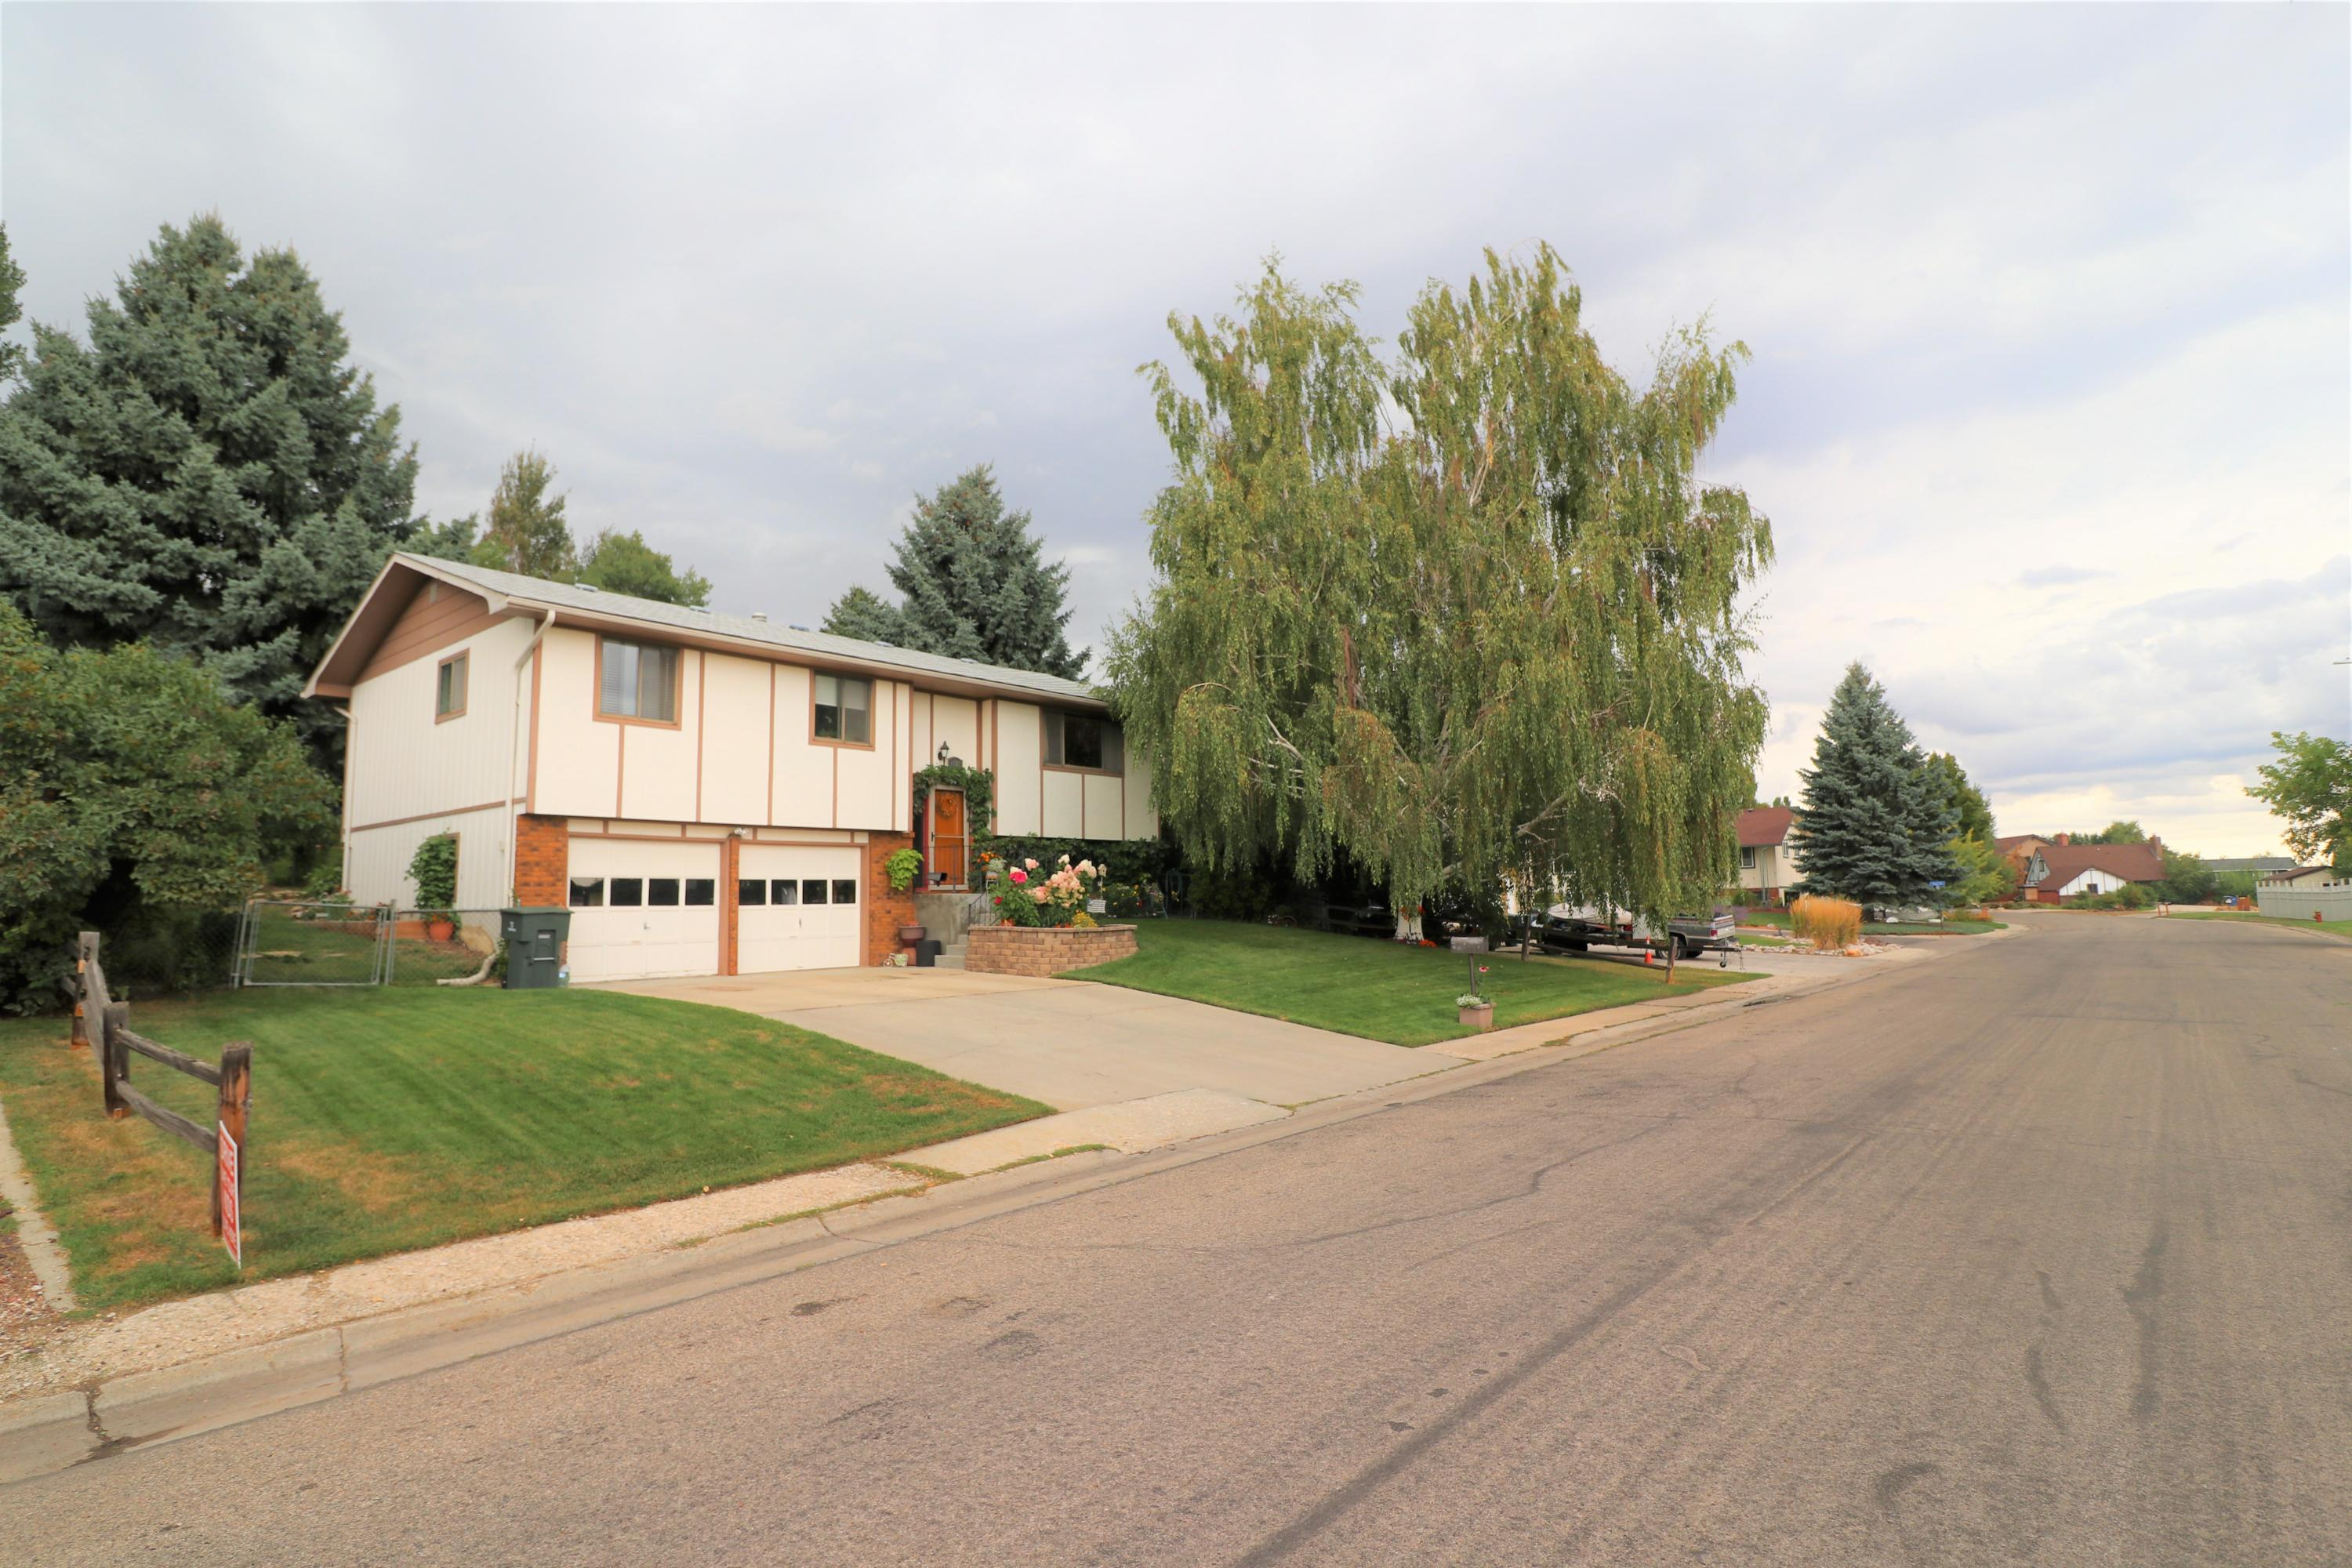 1822 Edwards Drive, Sheridan, Wyoming 82801, 3 Bedrooms Bedrooms, ,2 BathroomsBathrooms,Residential,For Sale,Edwards,19-951